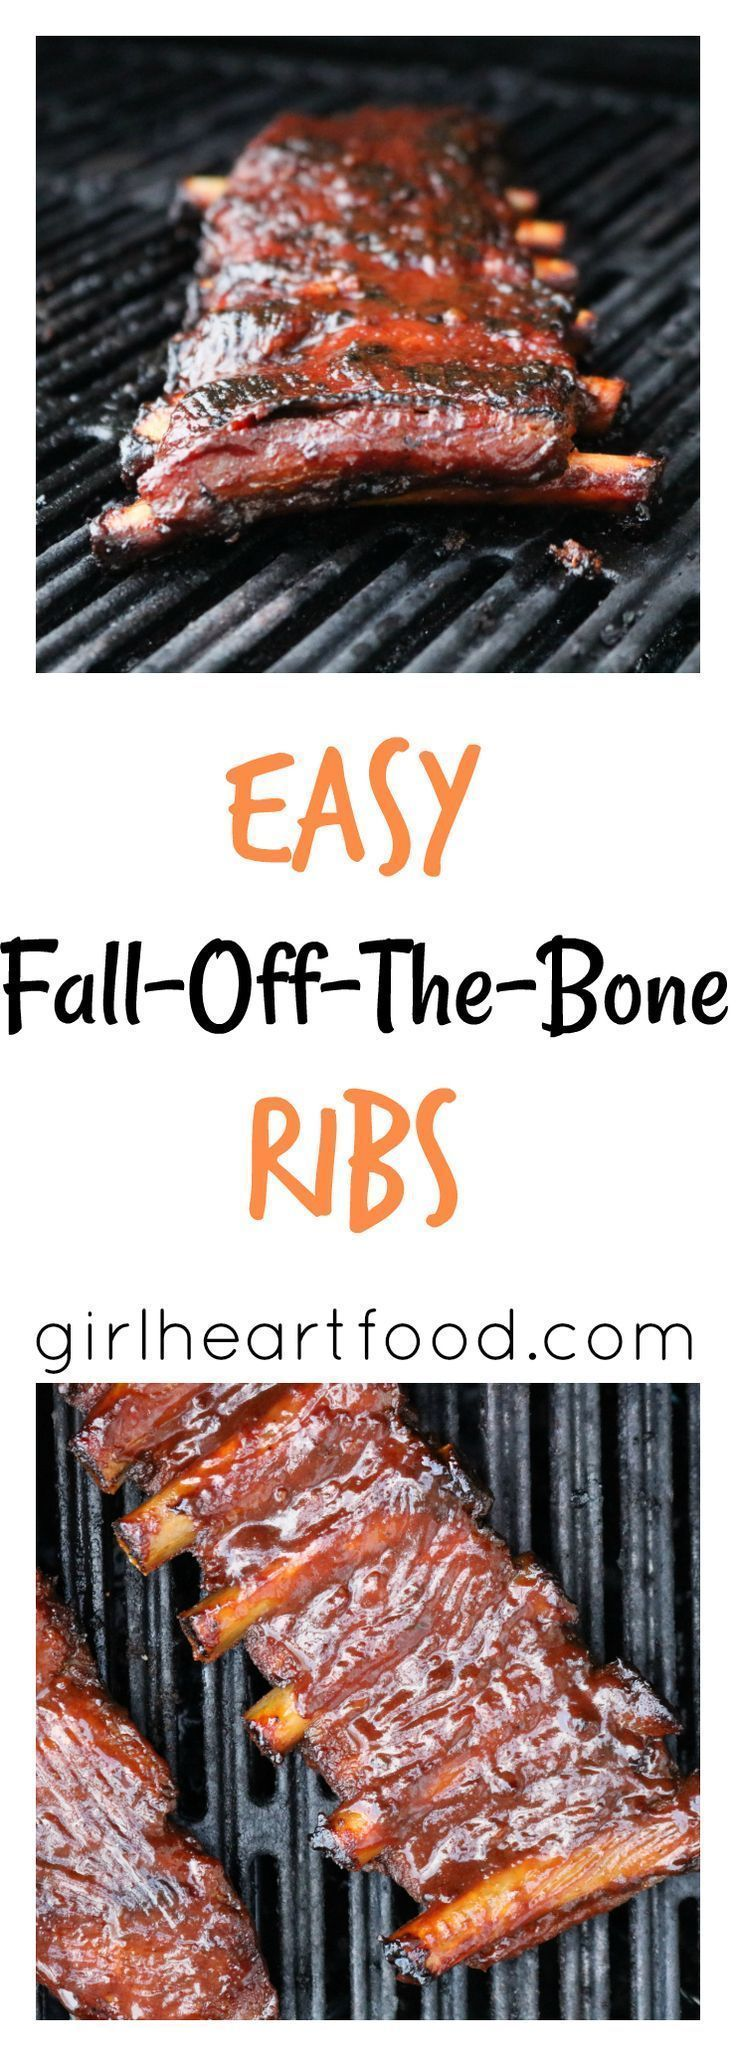 Easy Fall-off-the-Bone Ribs {rave reviews}